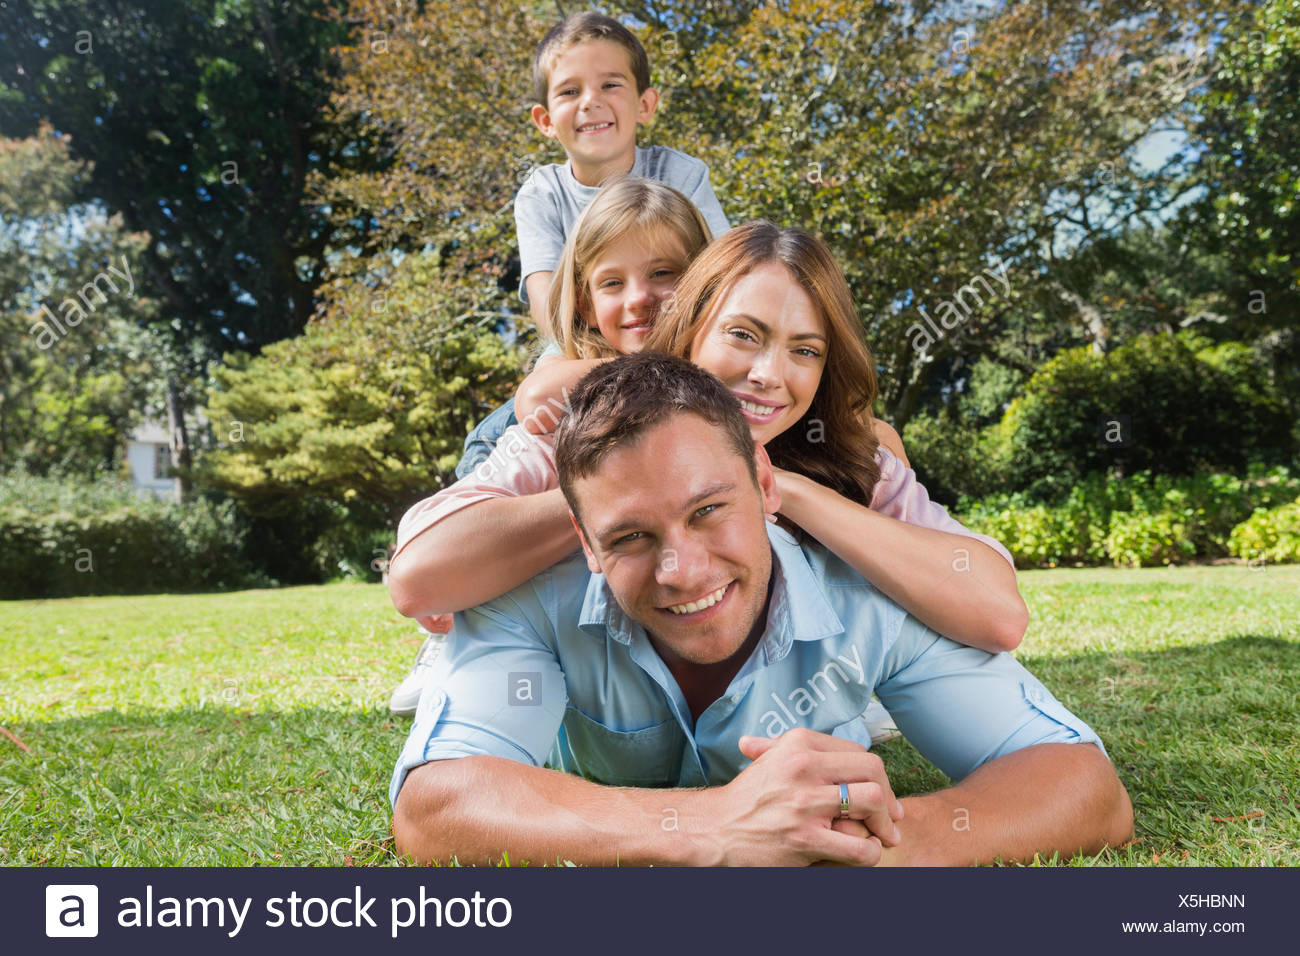 Happy family members lying on each other - Stock Image